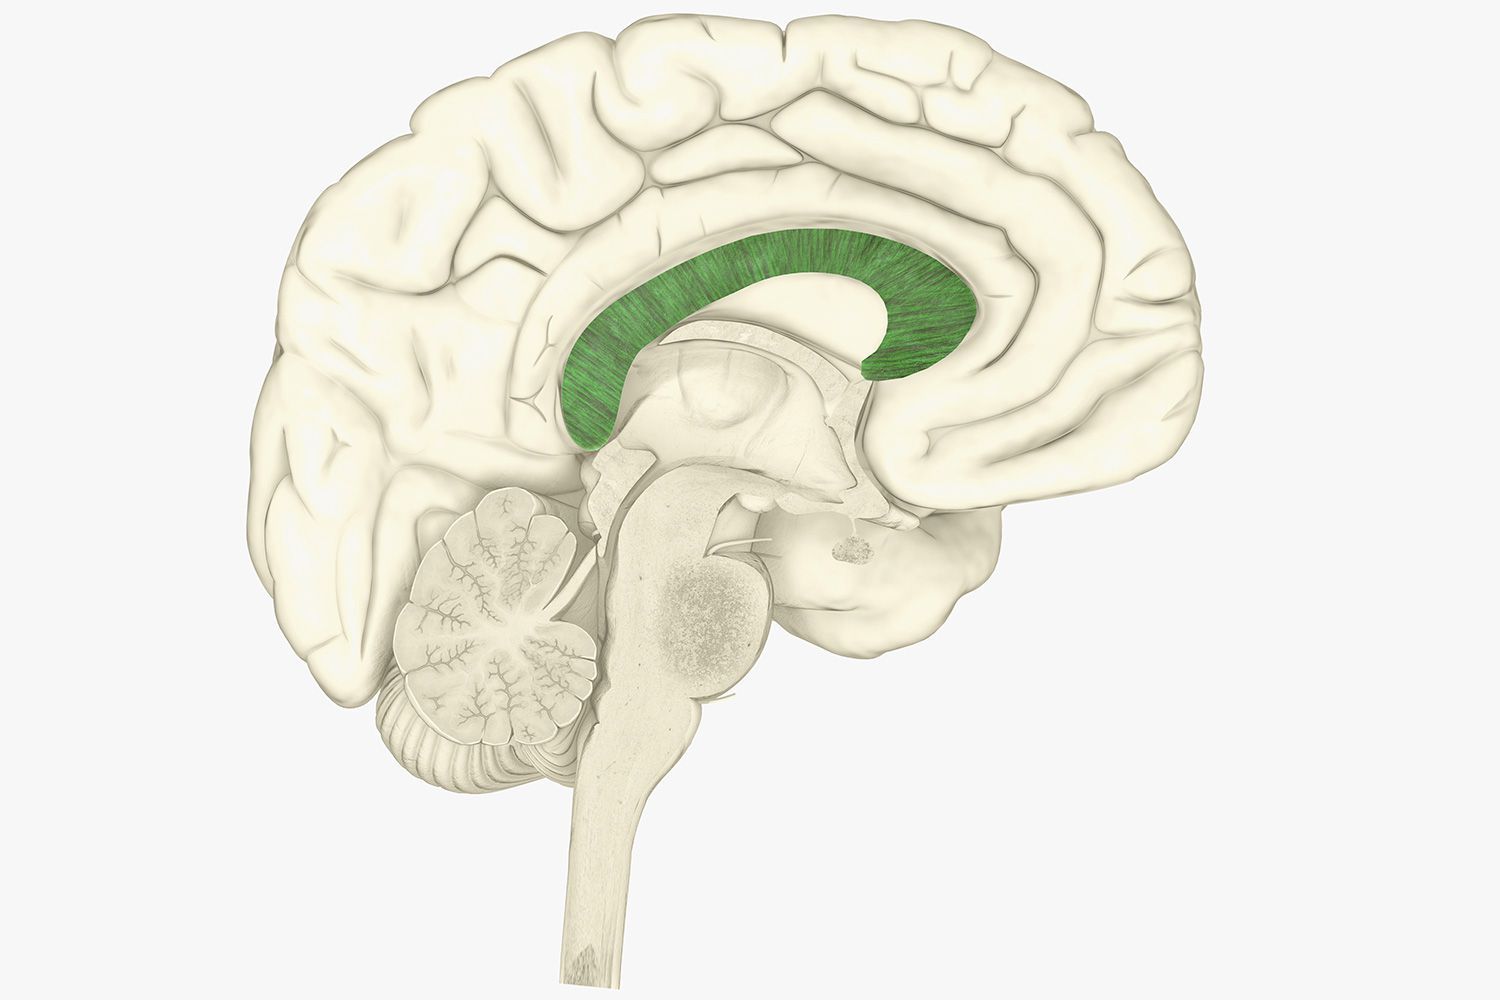 For Brain Anatomy And Function Displaying 16 Gallery Images For